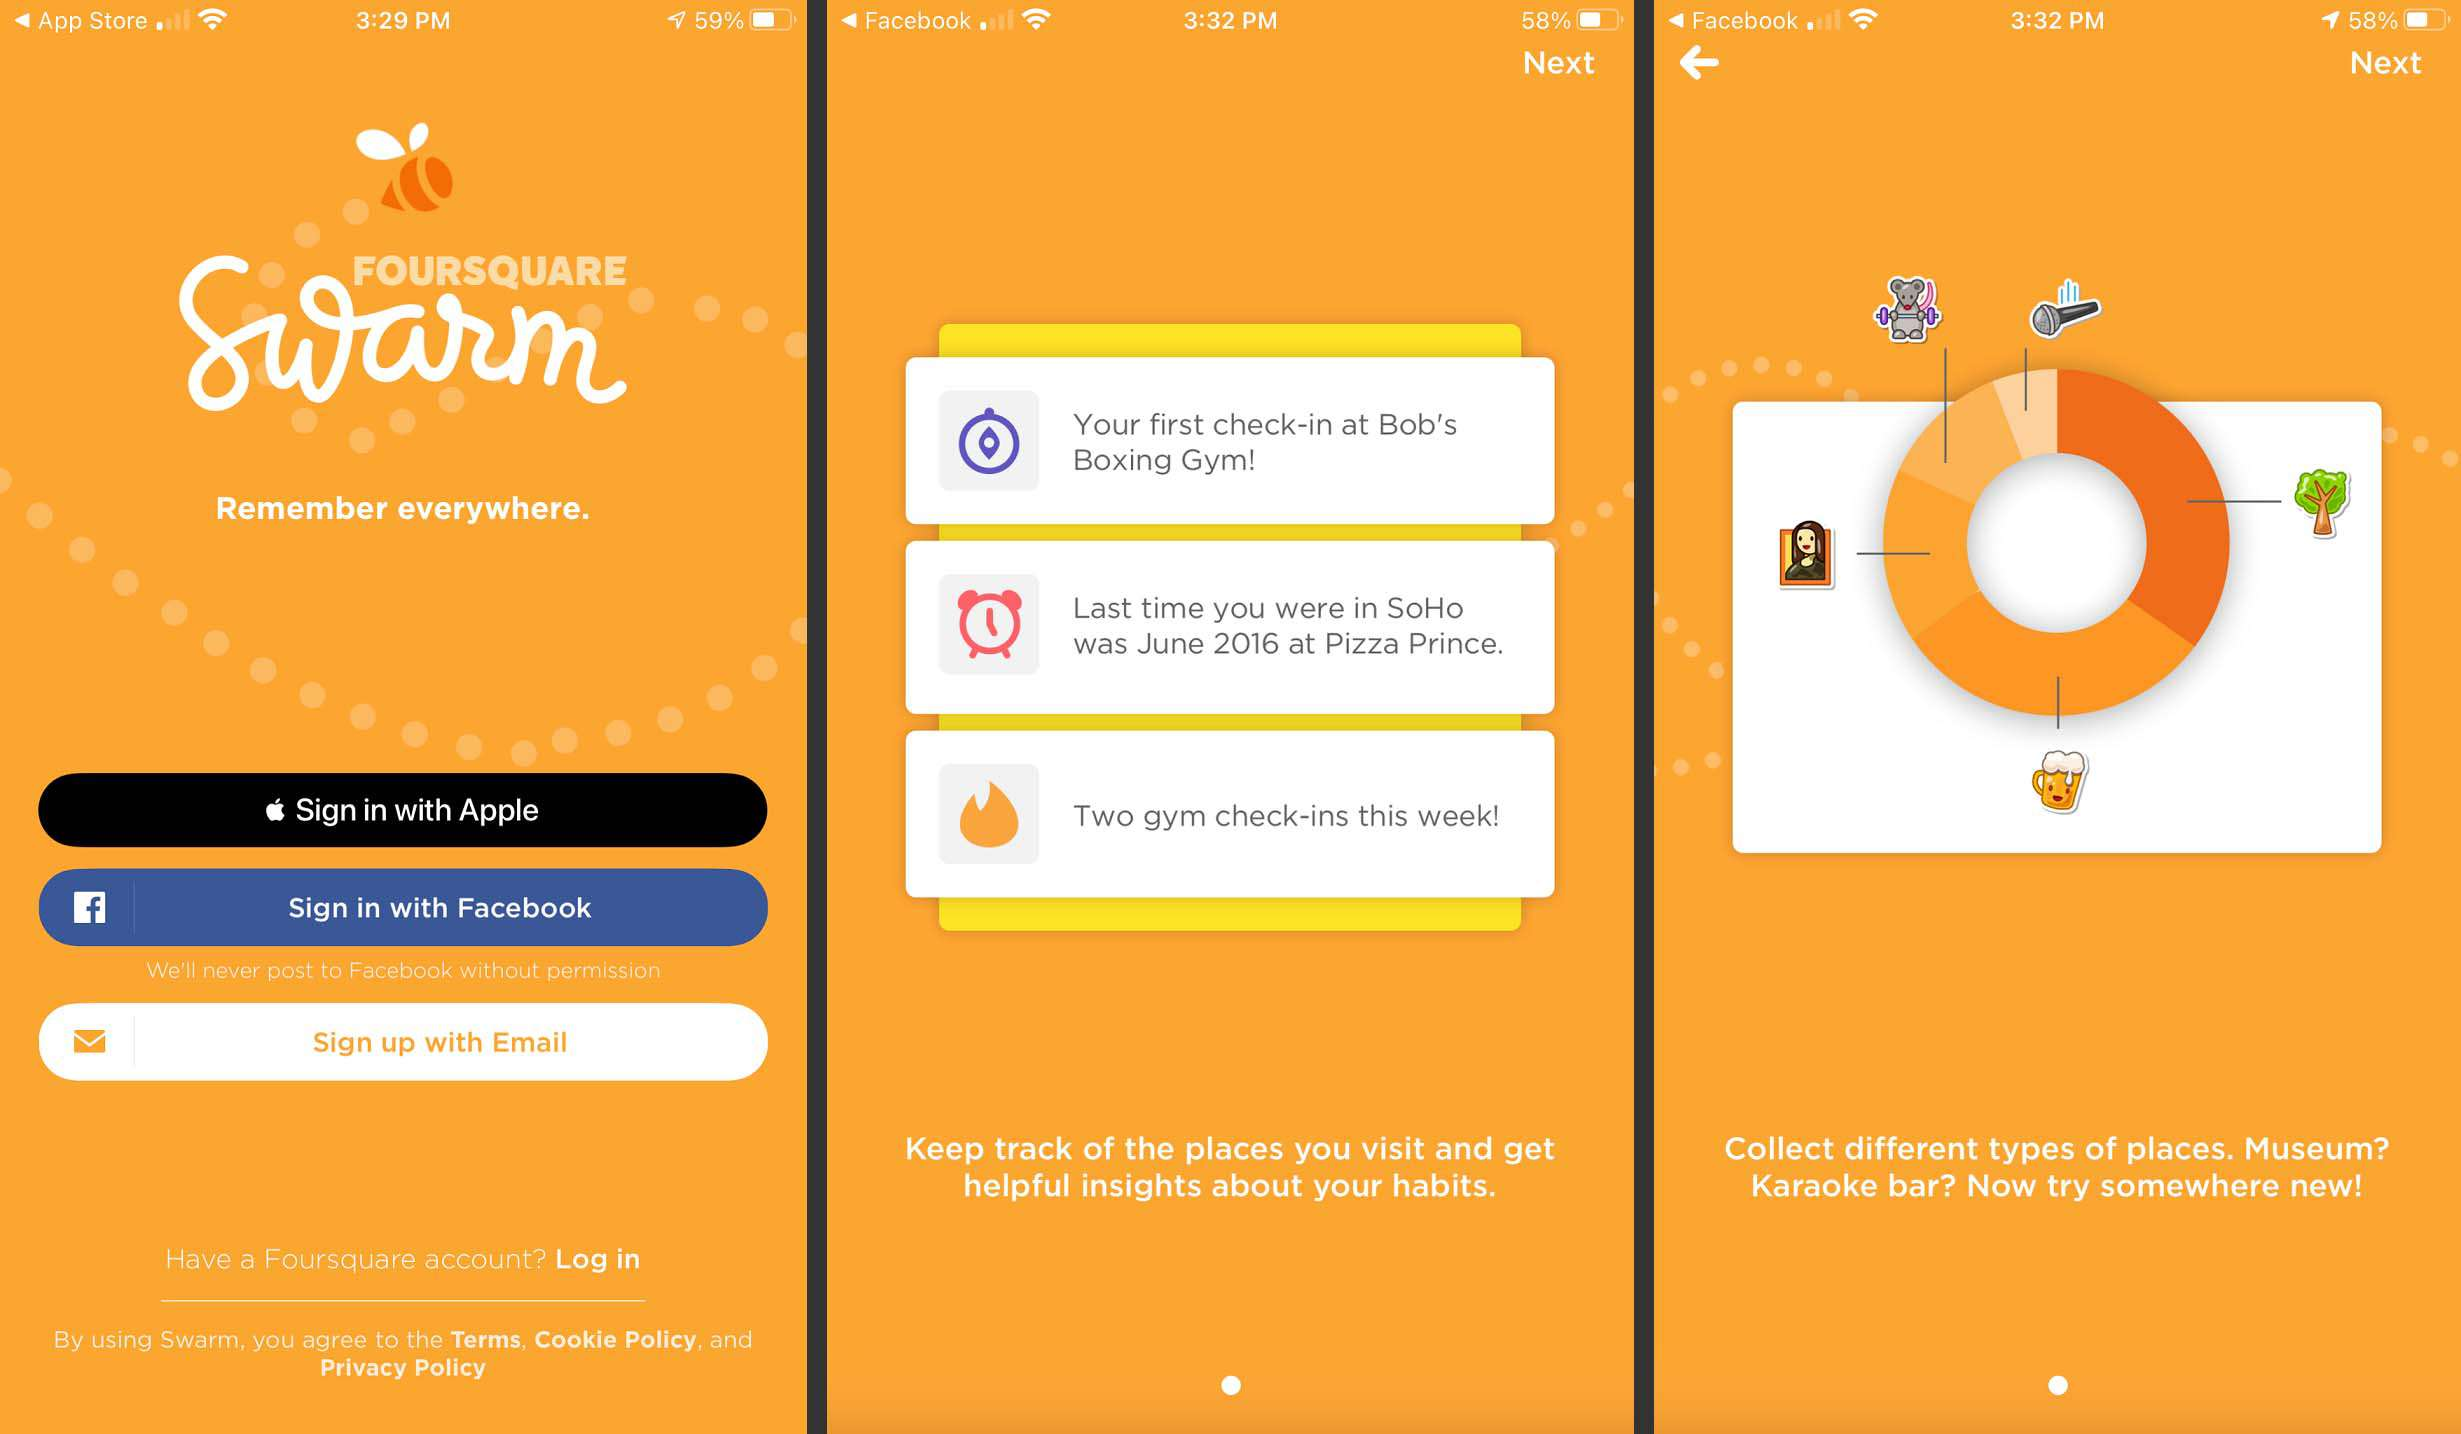 Signing up on Foursquare Swarm.